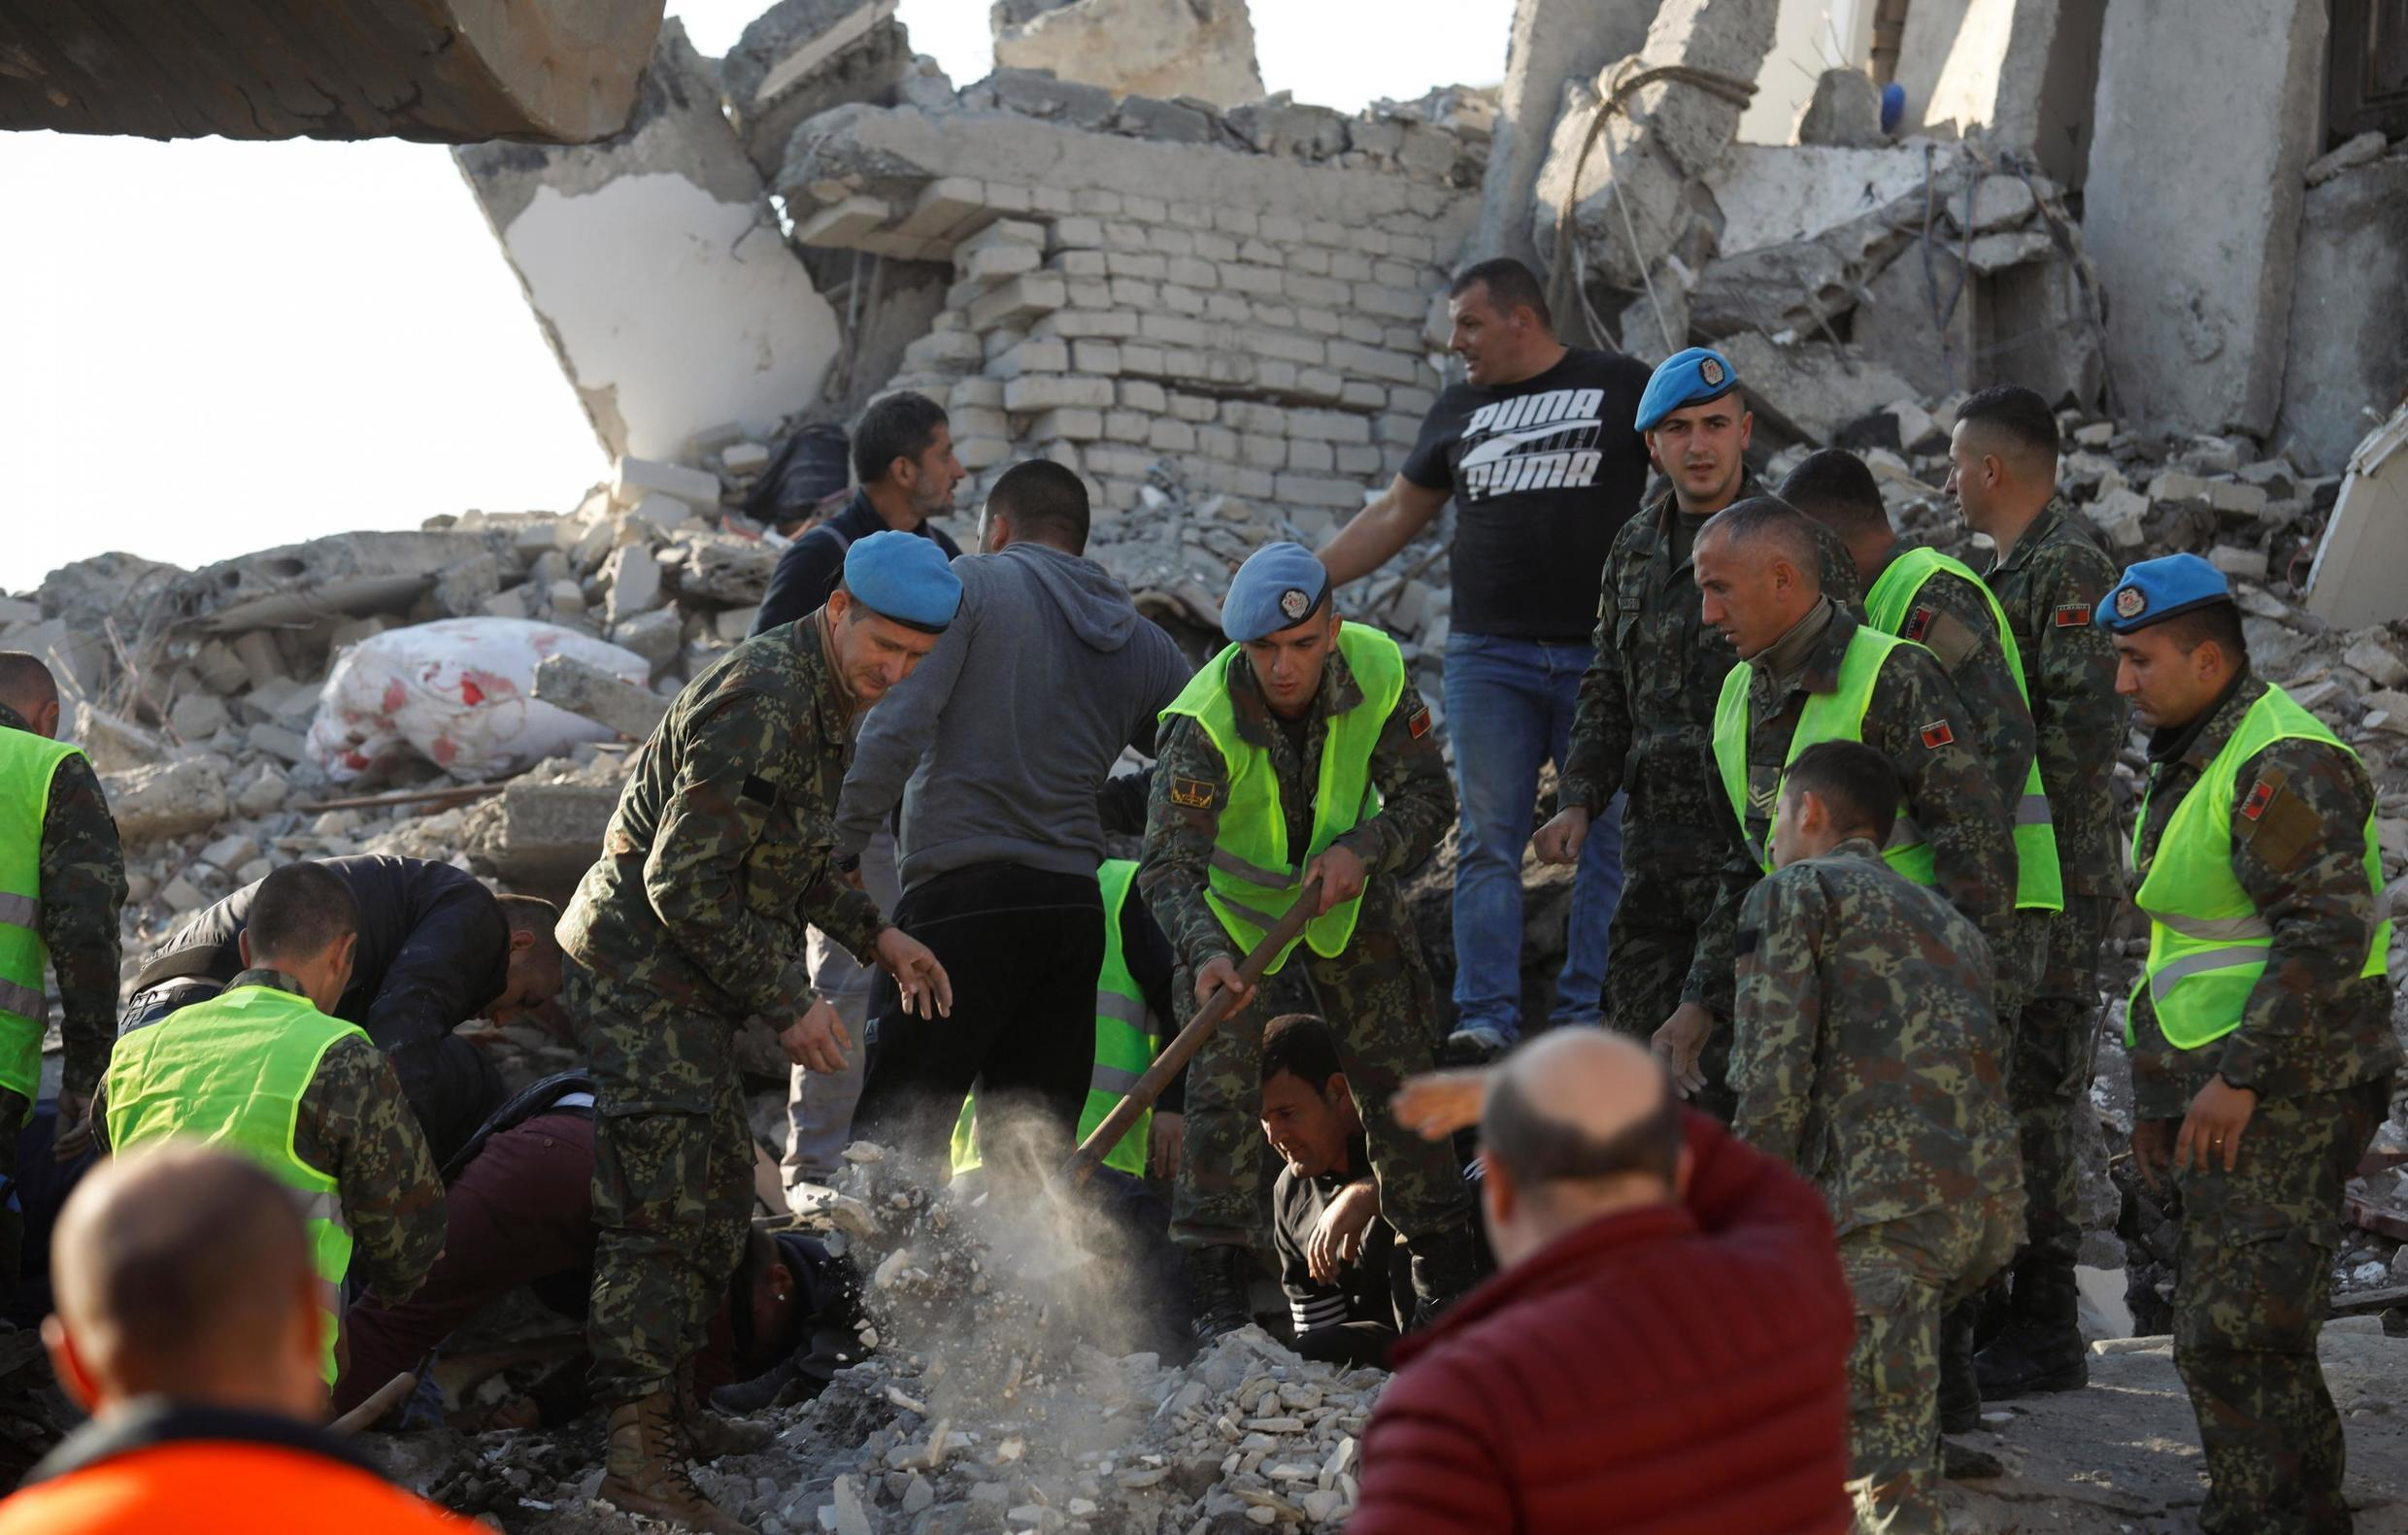 Rescuers sift through rubble in Albania after the earthquake, 26 November 2019